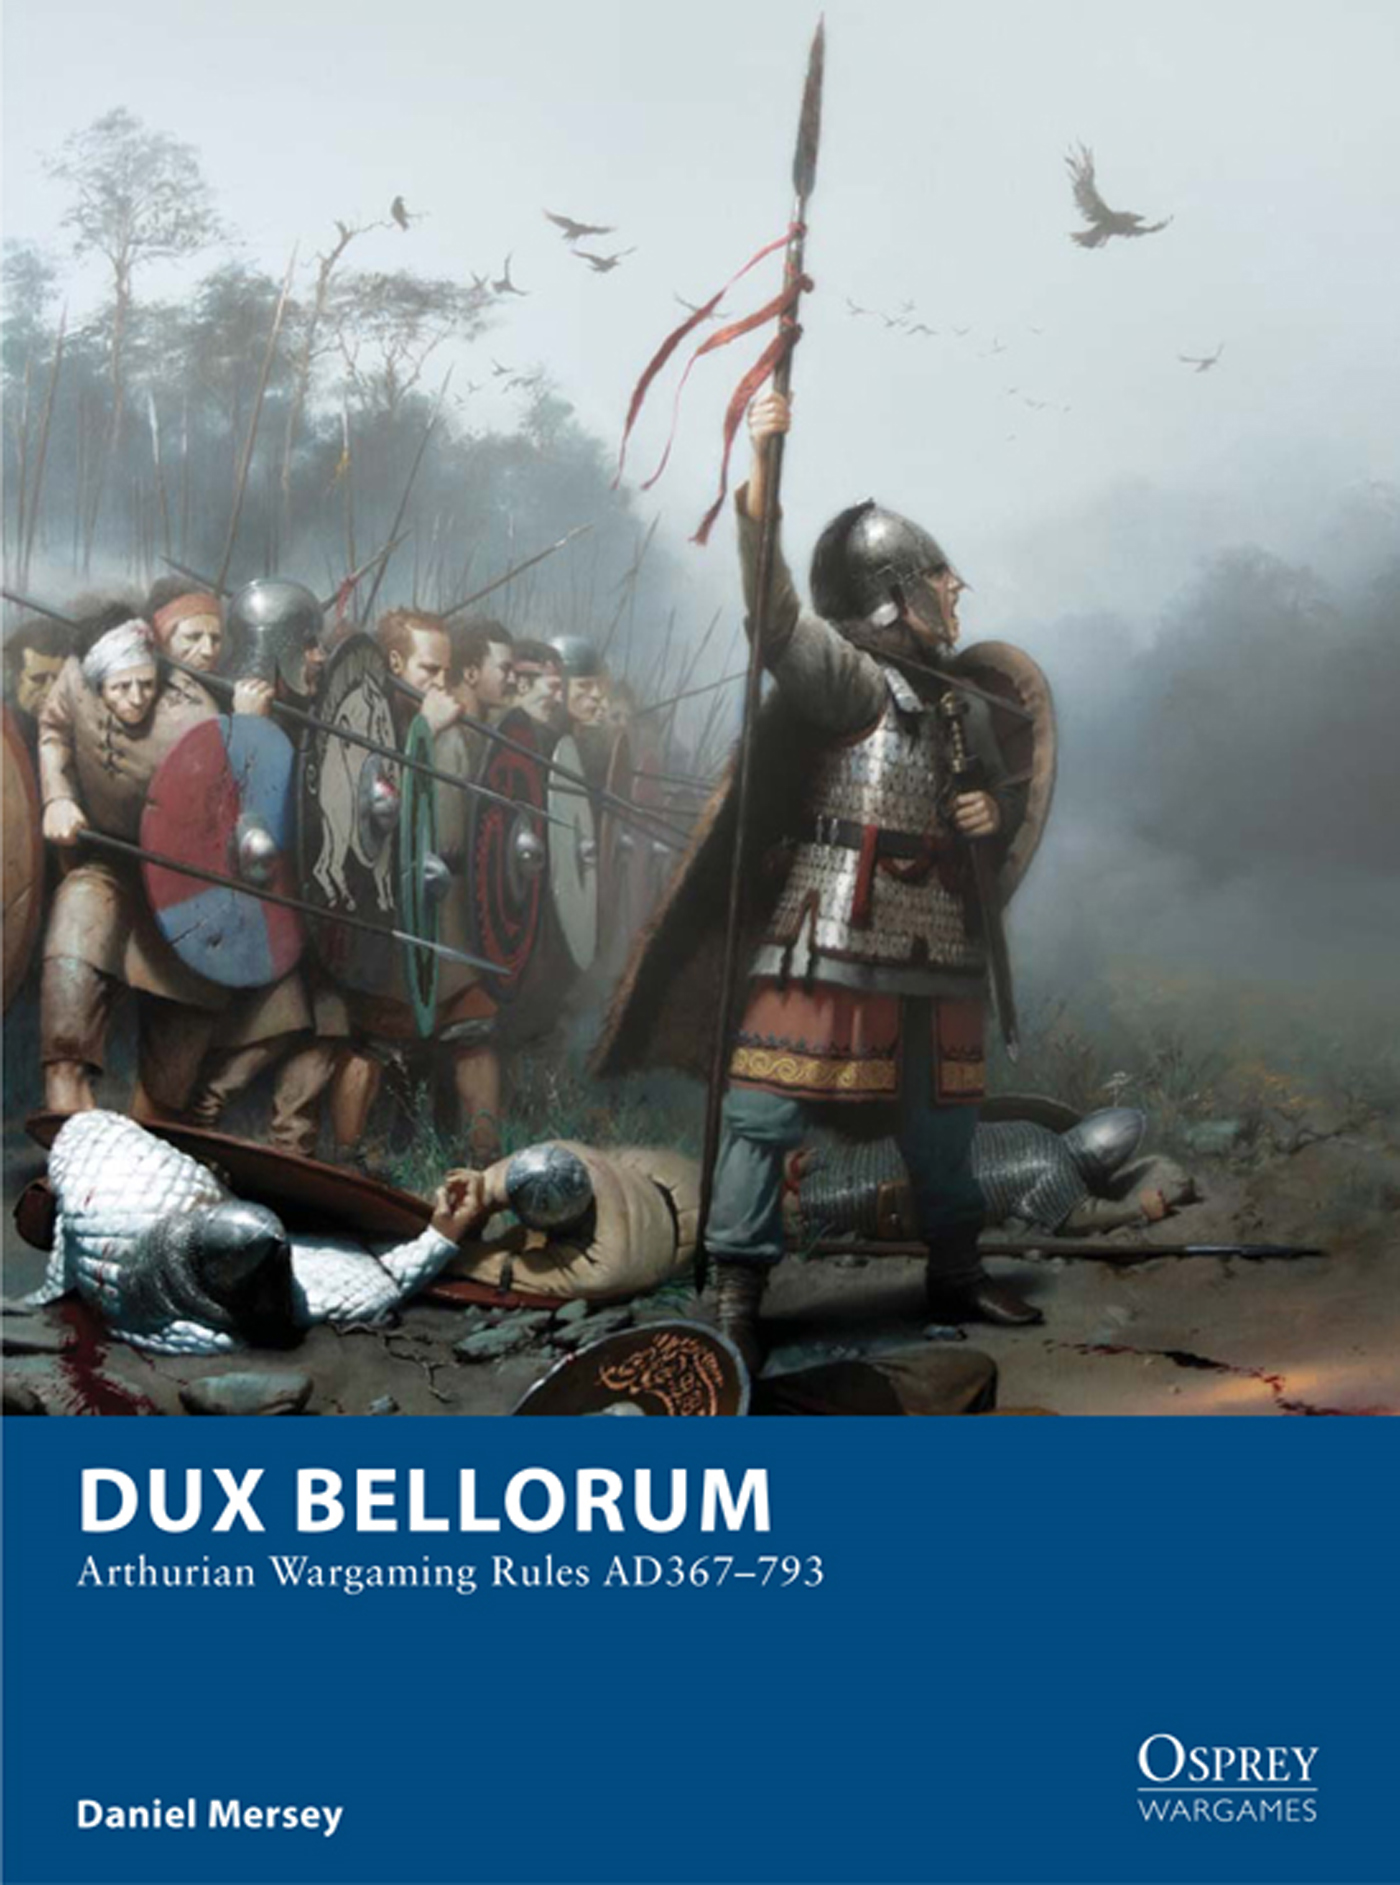 Dux Bellorum - Arthurian Wargaming Rules AD 367-793